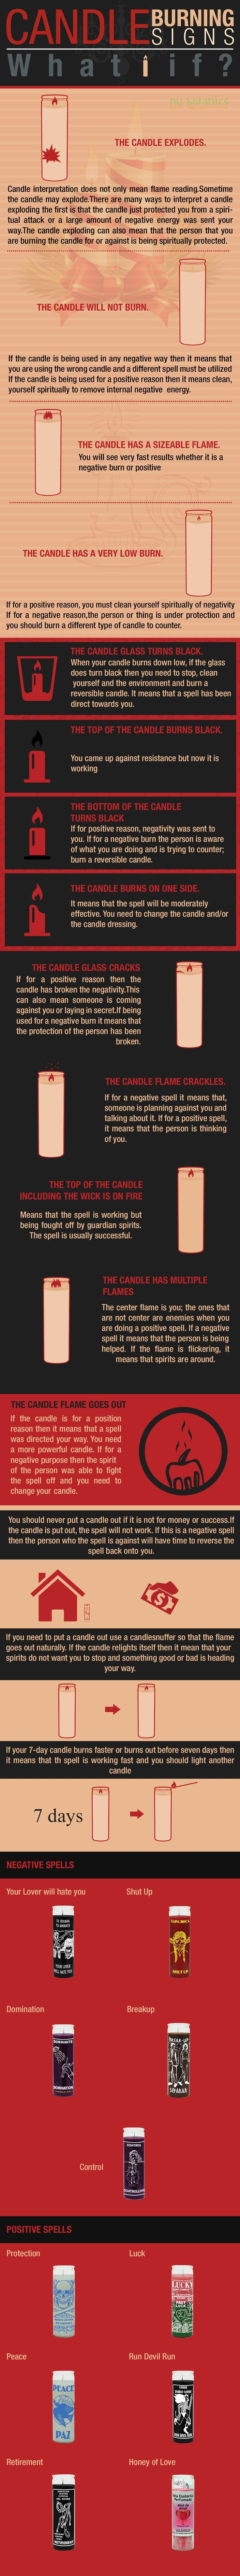 candle burning meaning